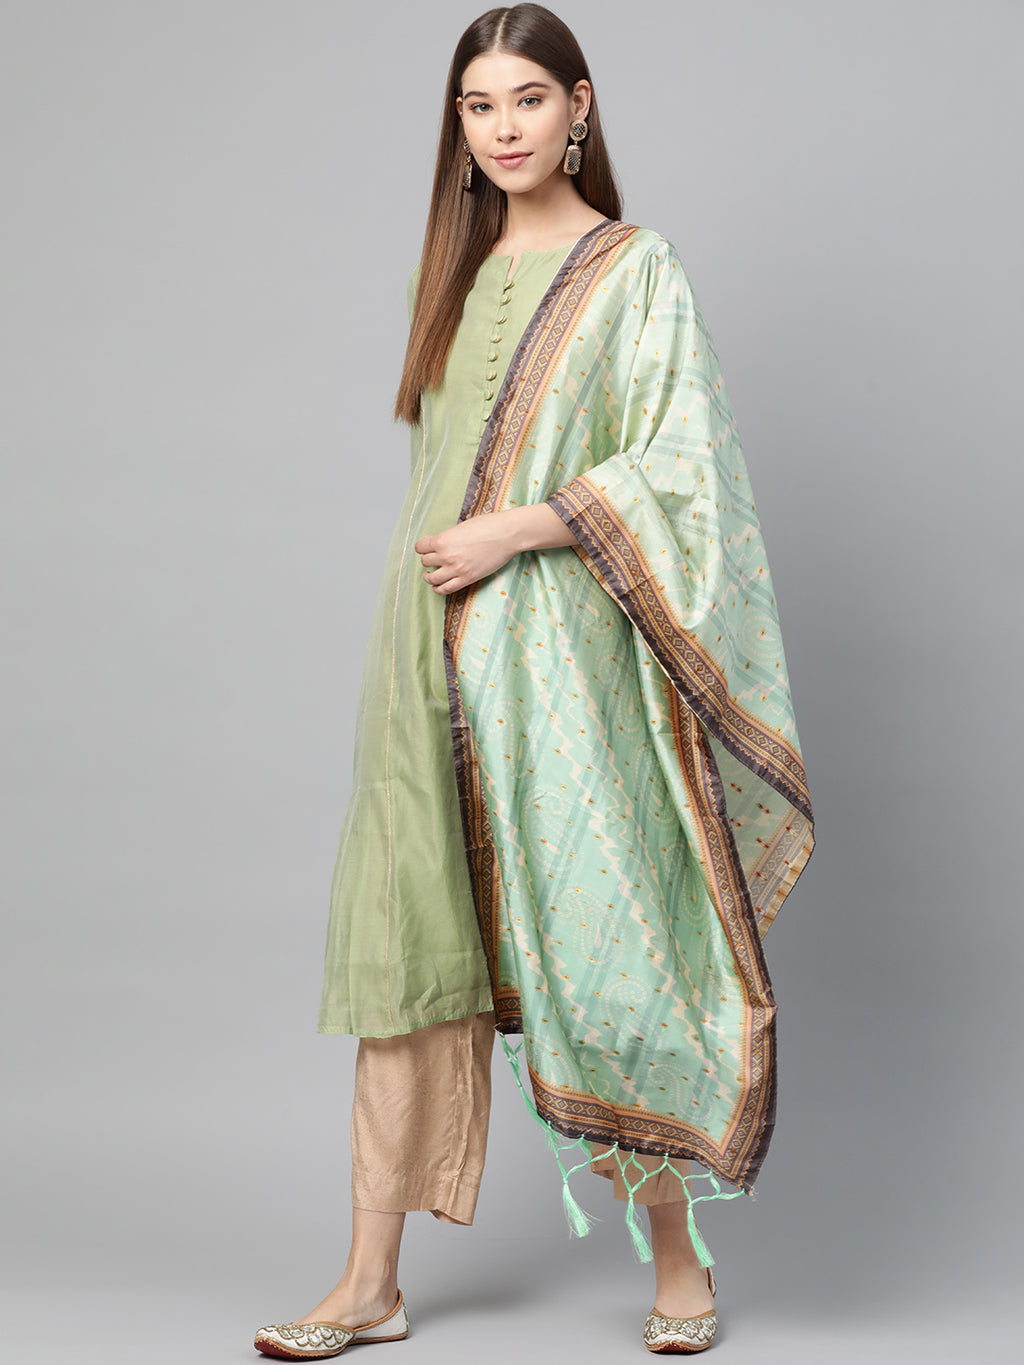 Aqua Green Color Jacquard Silk Festive Wear Dupatta NYF-8200